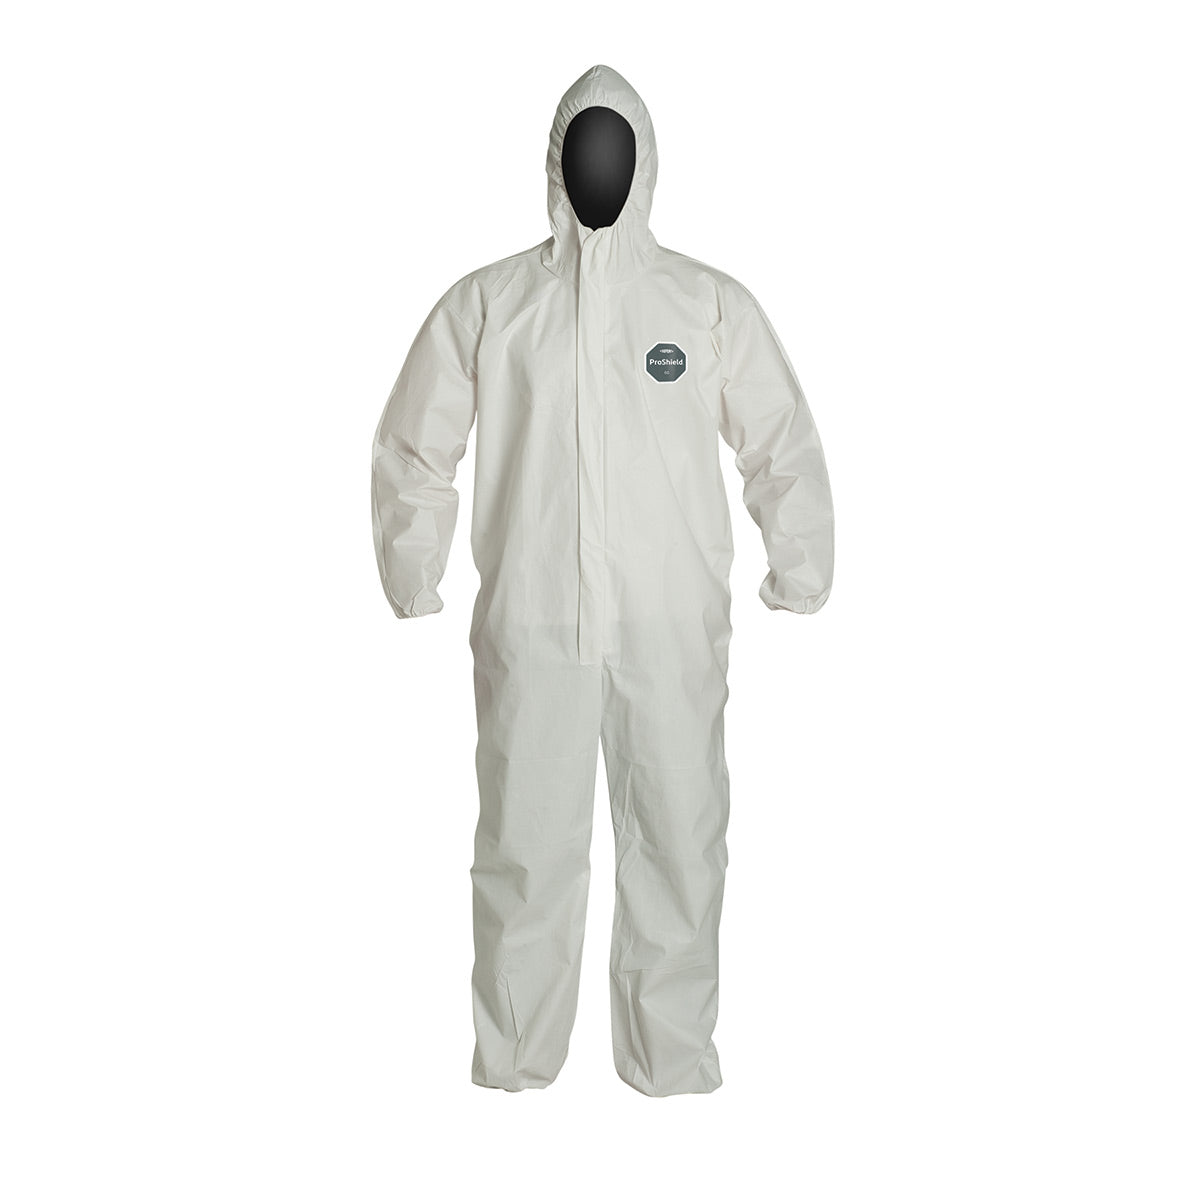 DuPont™ ProShield® 60 Coveralls with Elastic Wrists and Ankles